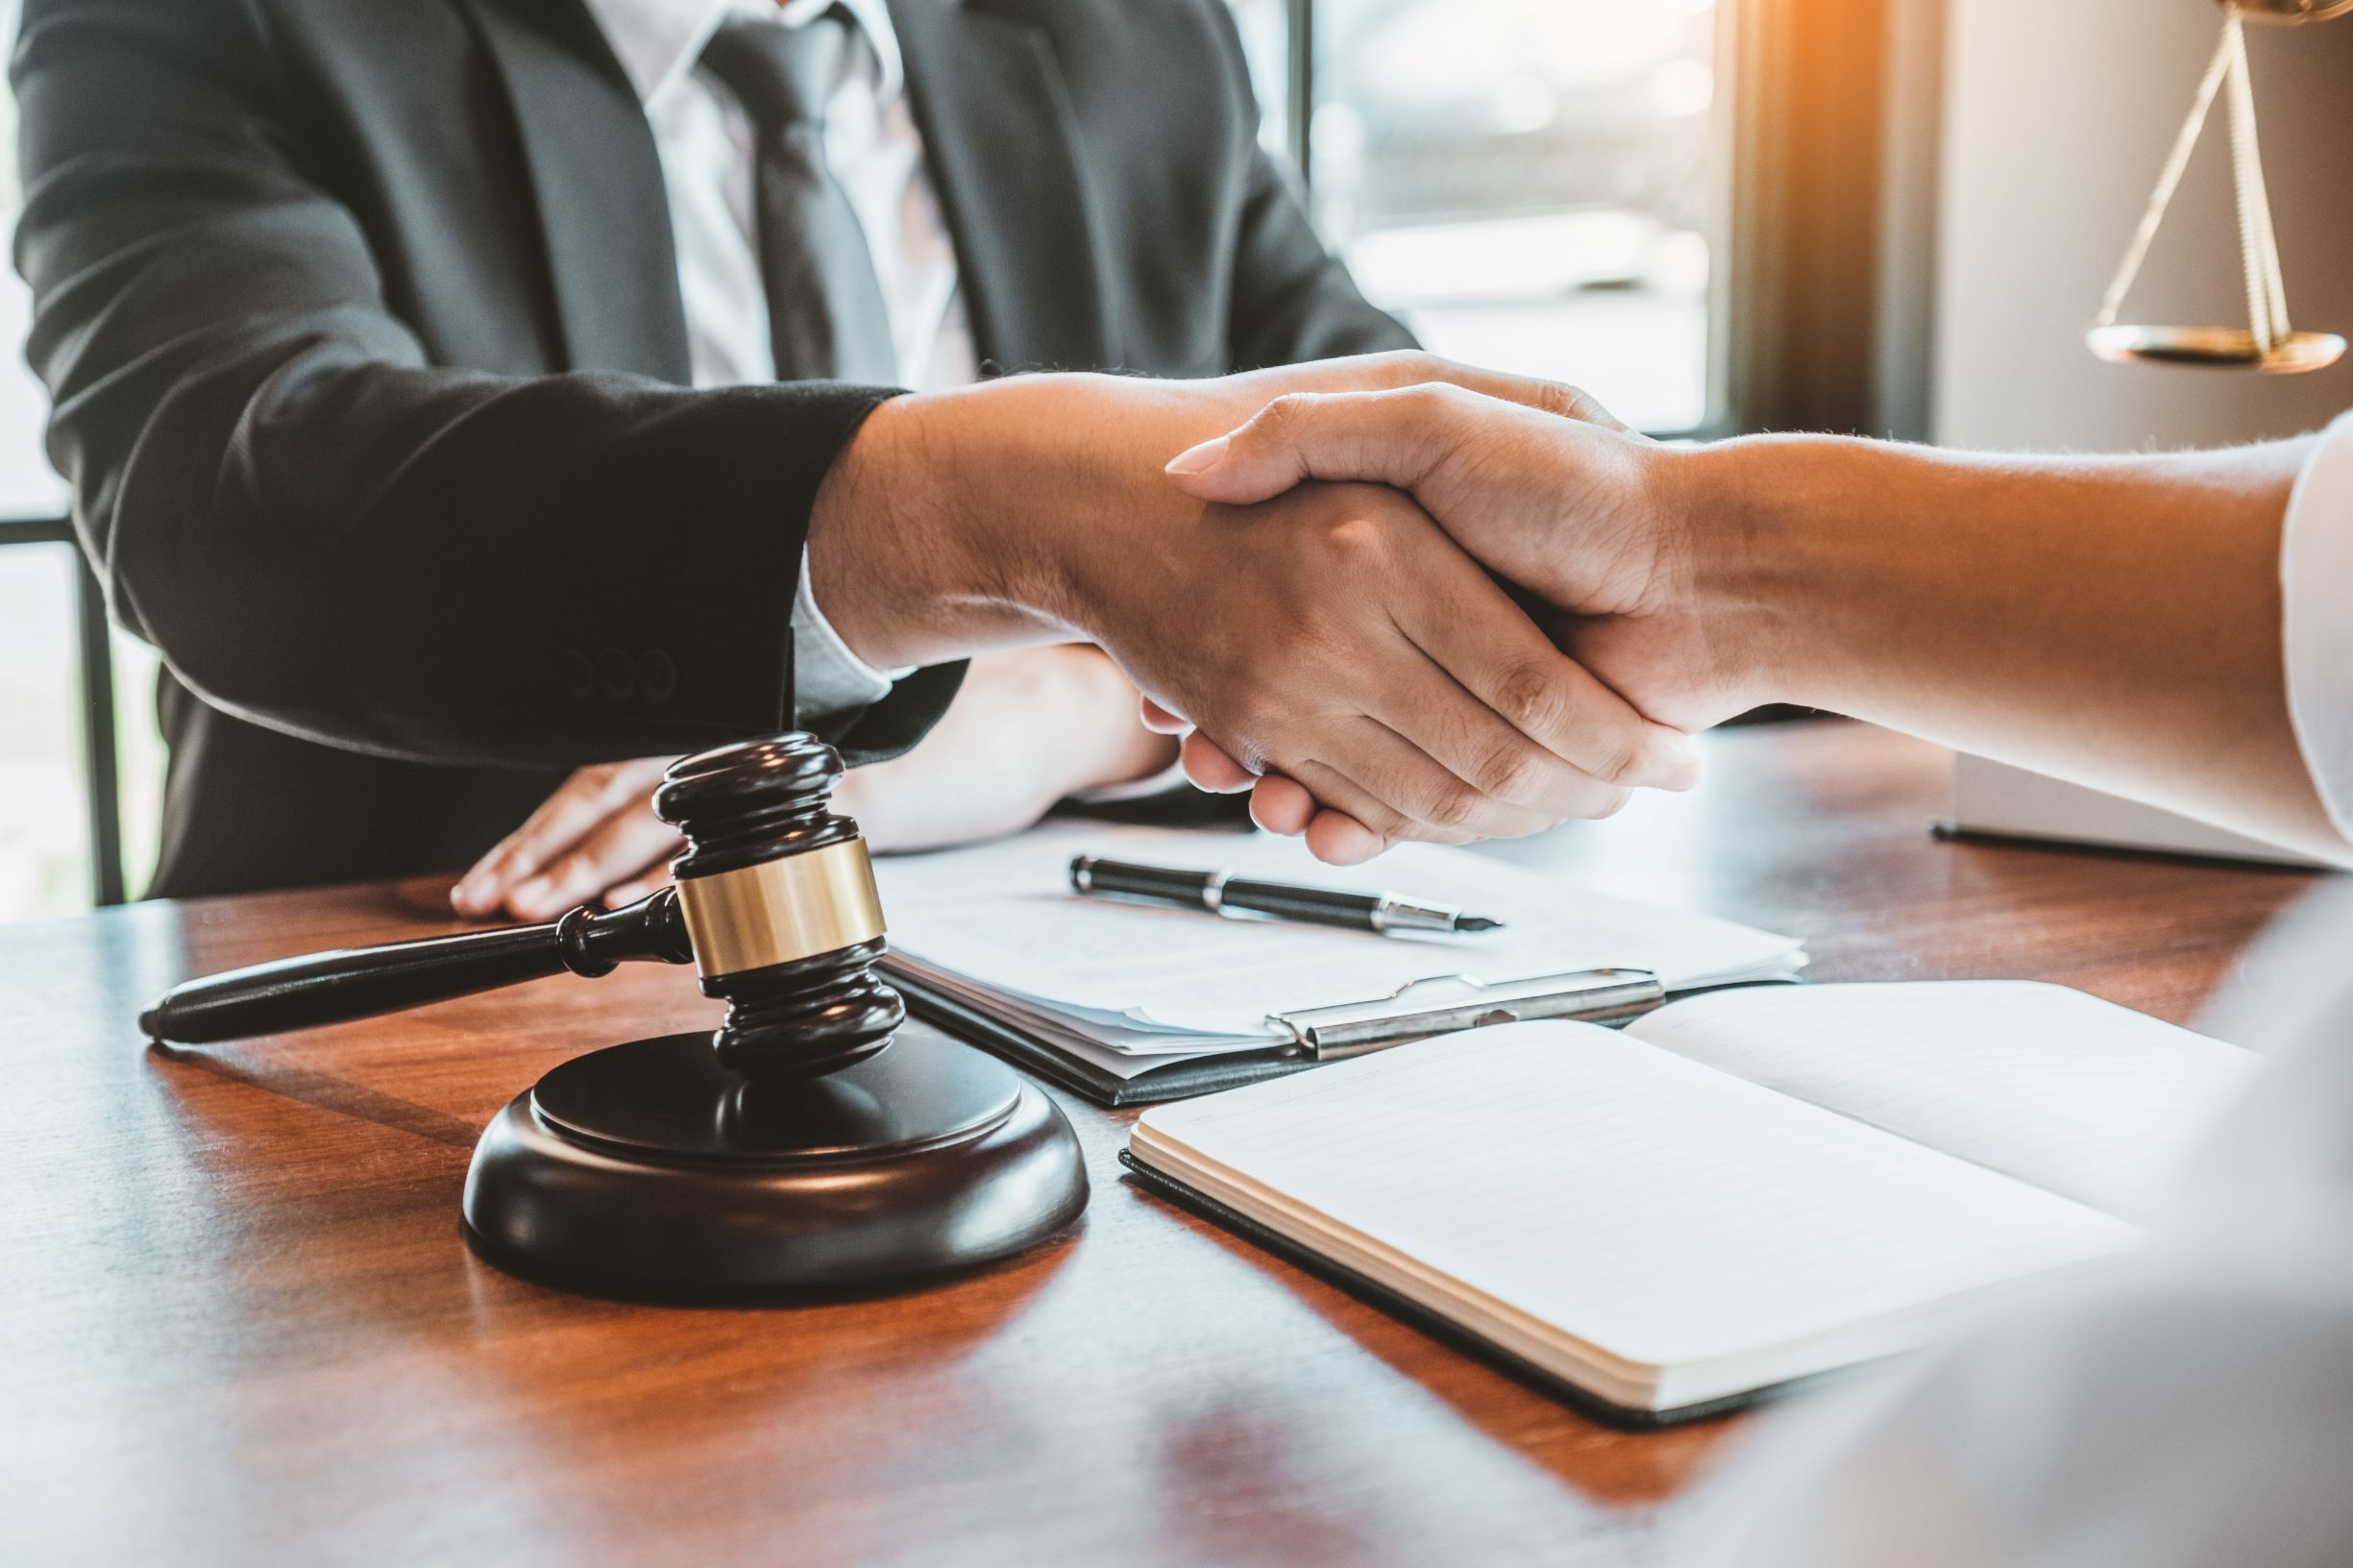 attorney improves lead conversion rate by winning trust of potential client during consultation